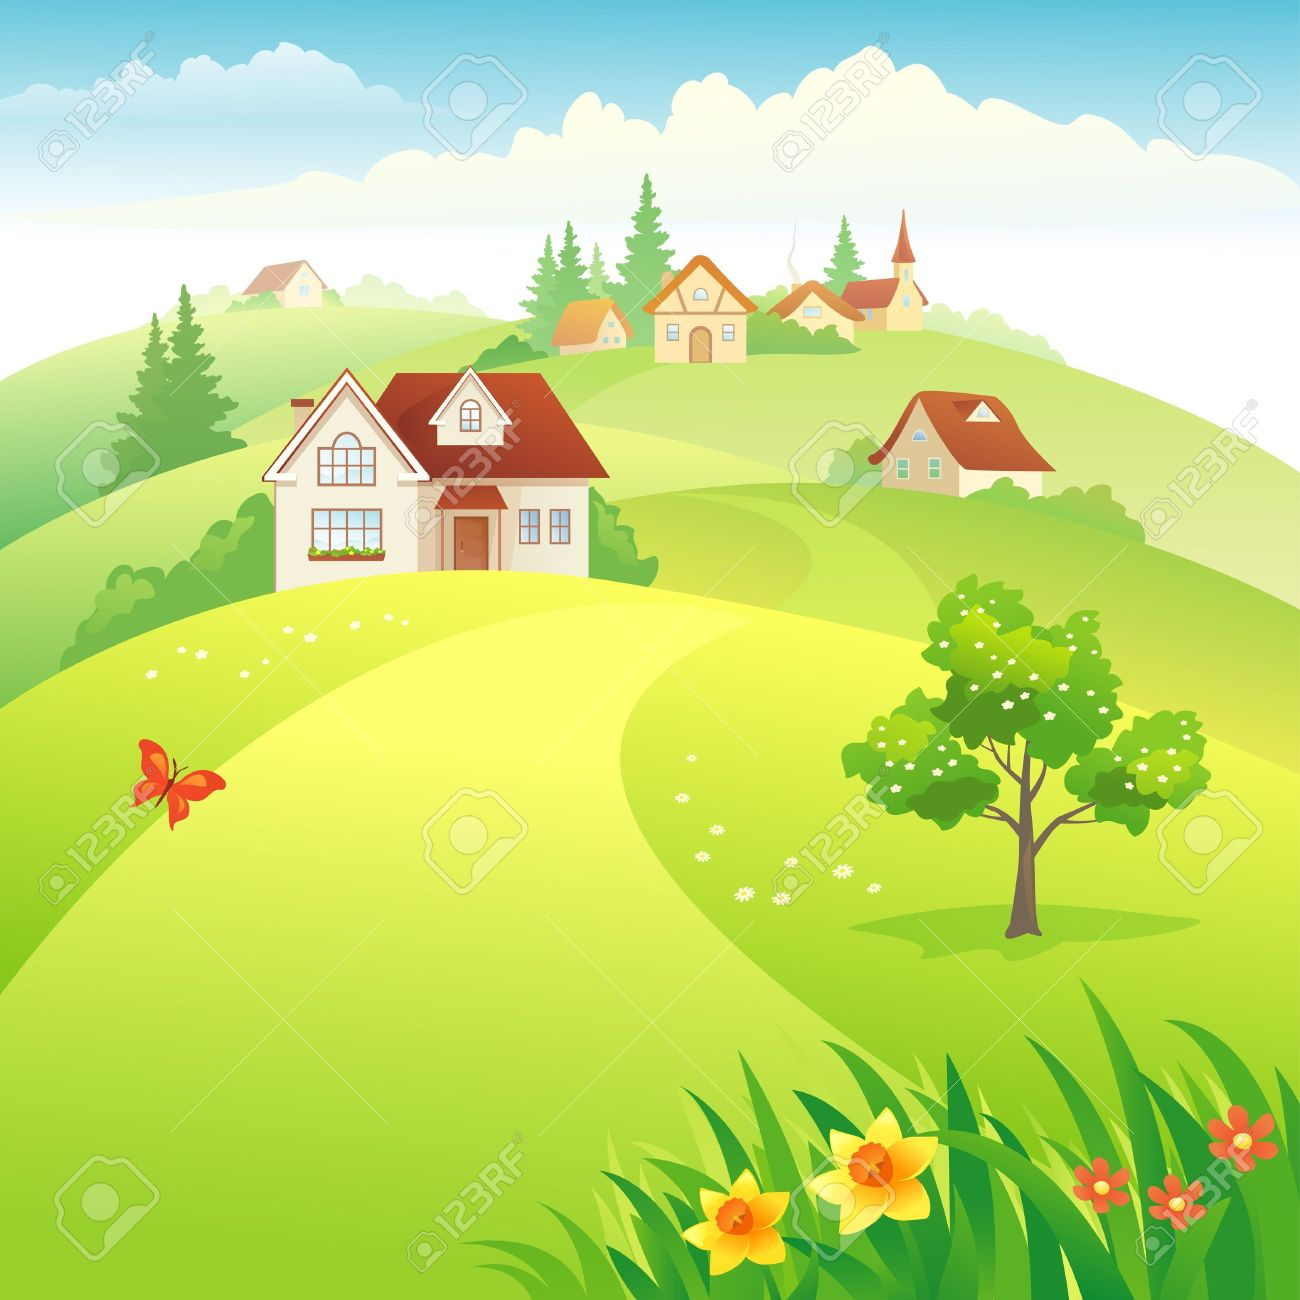 picture royalty free download Images portal . Village clipart